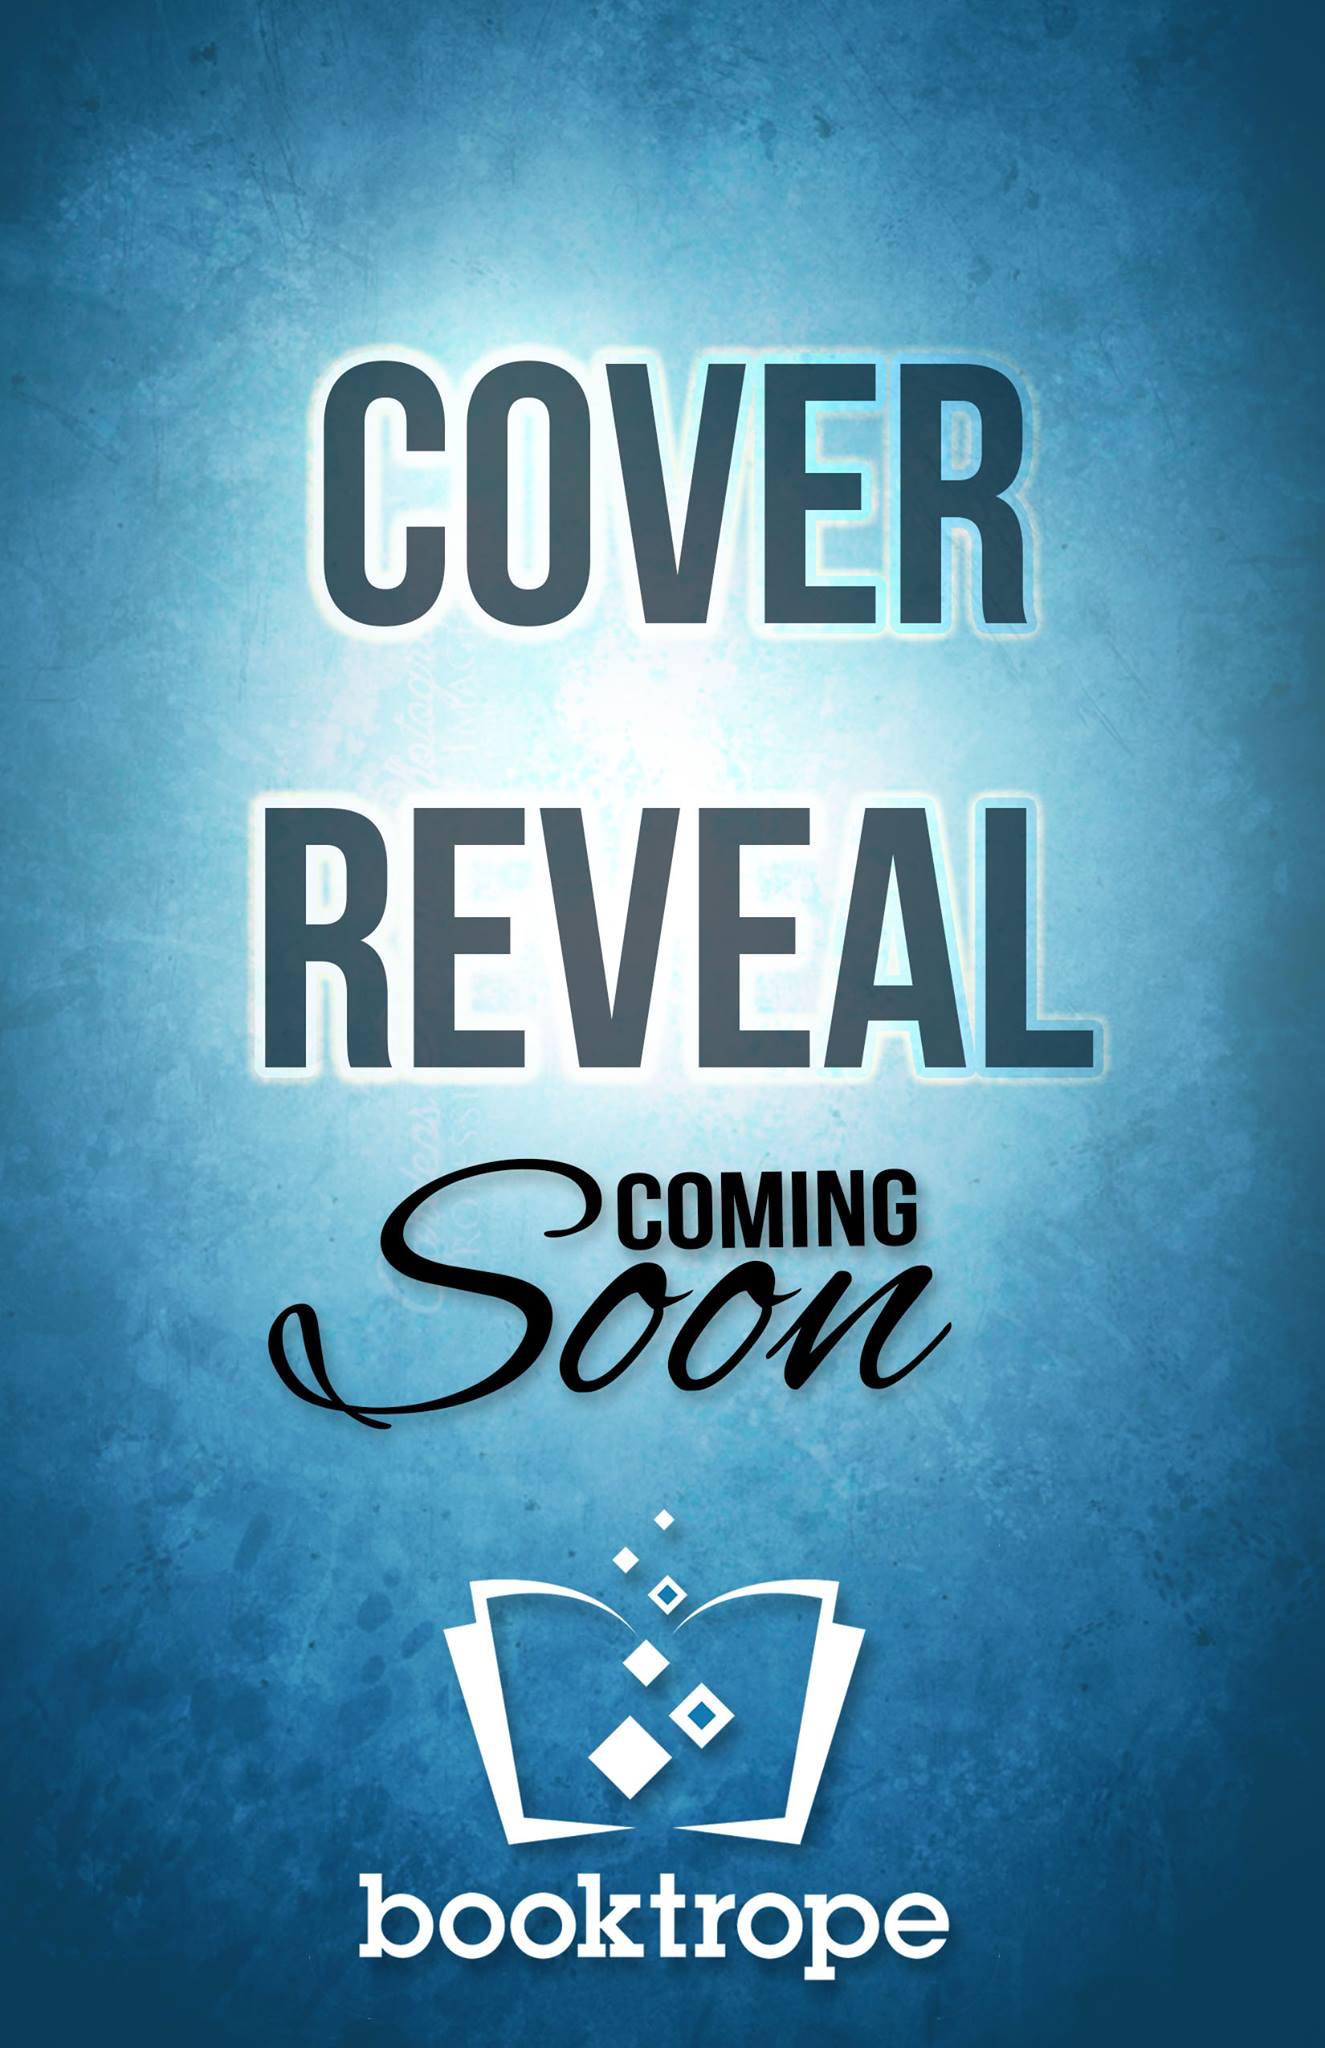 cover reveal placeholder 02 (2)